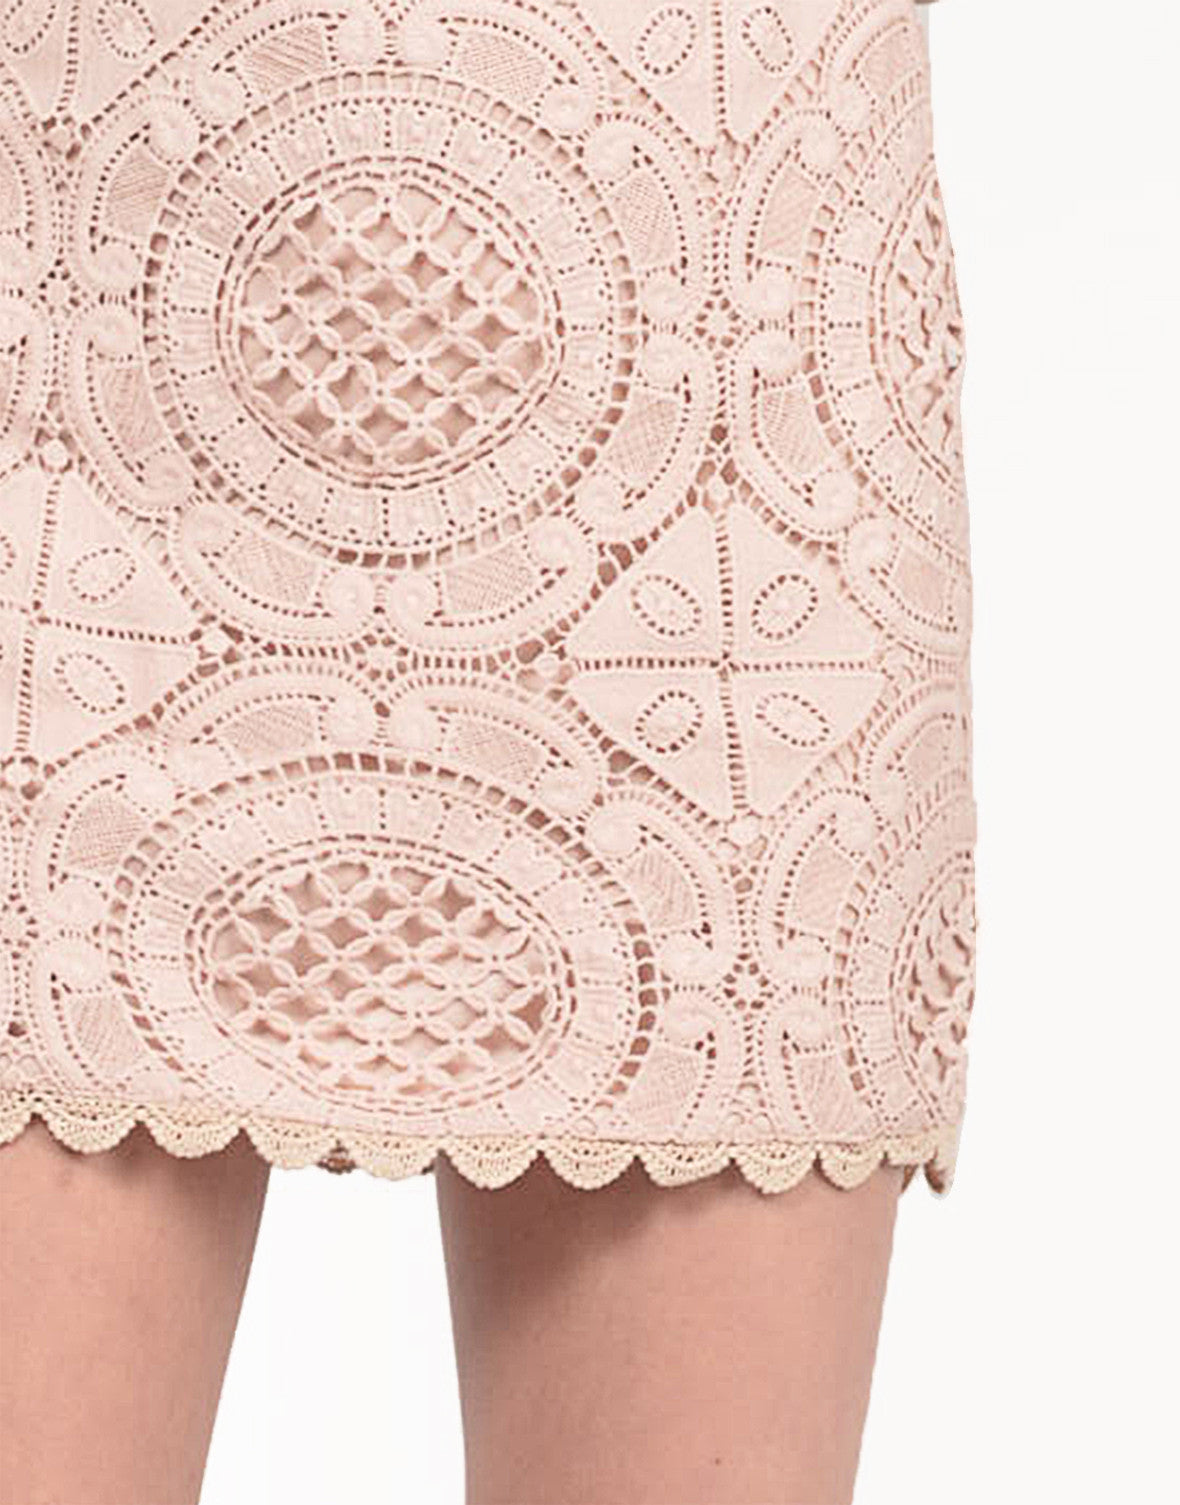 Detail of Crochet Boxy Dress